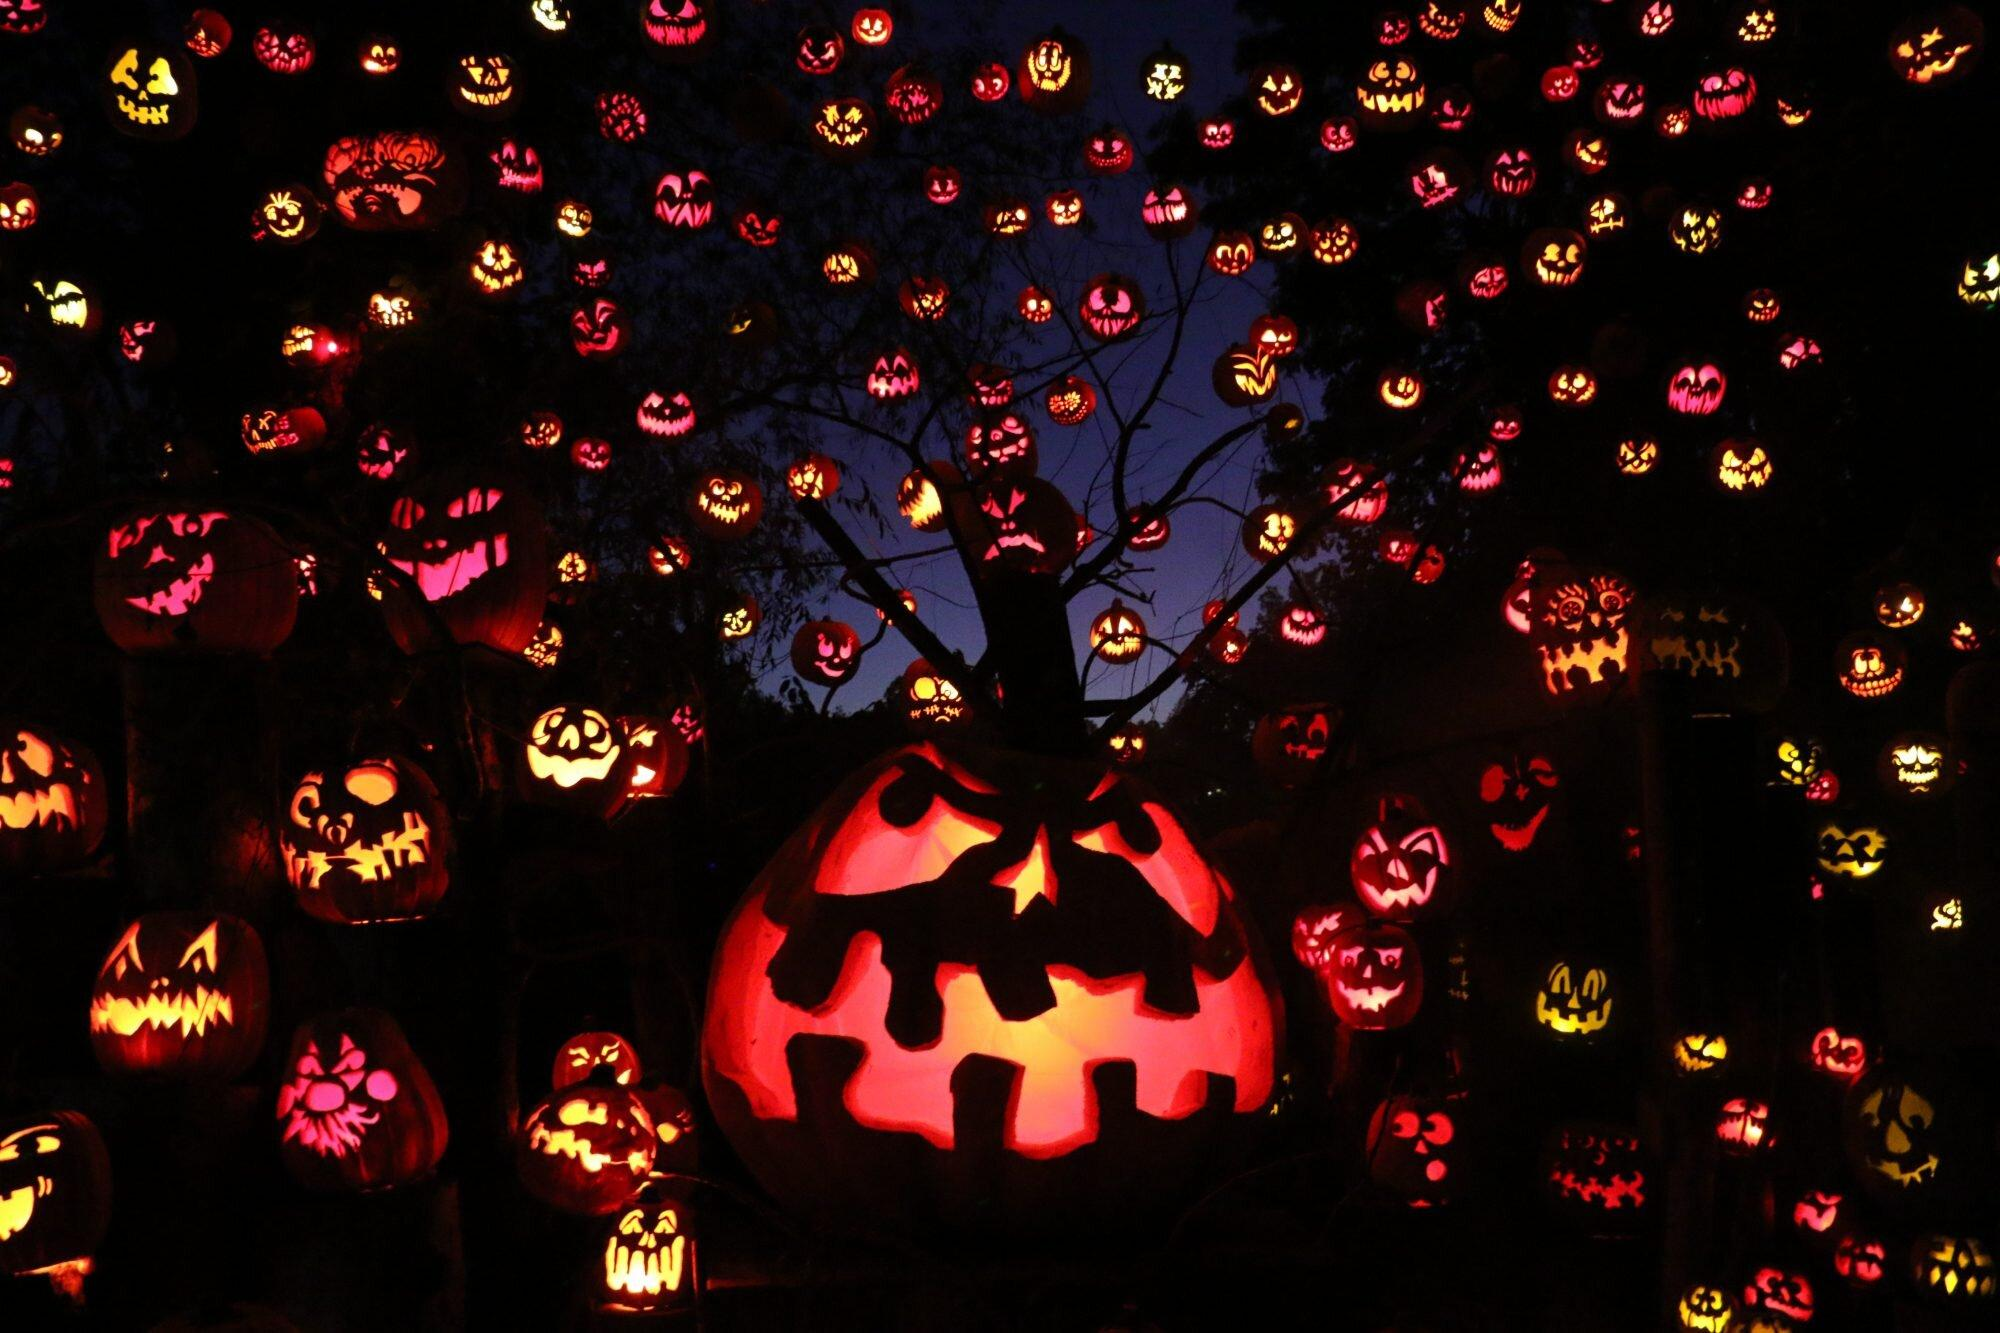 Halloween Activites 2020 Near Me 9 Halloween Activities Still Happening Near You in 2020